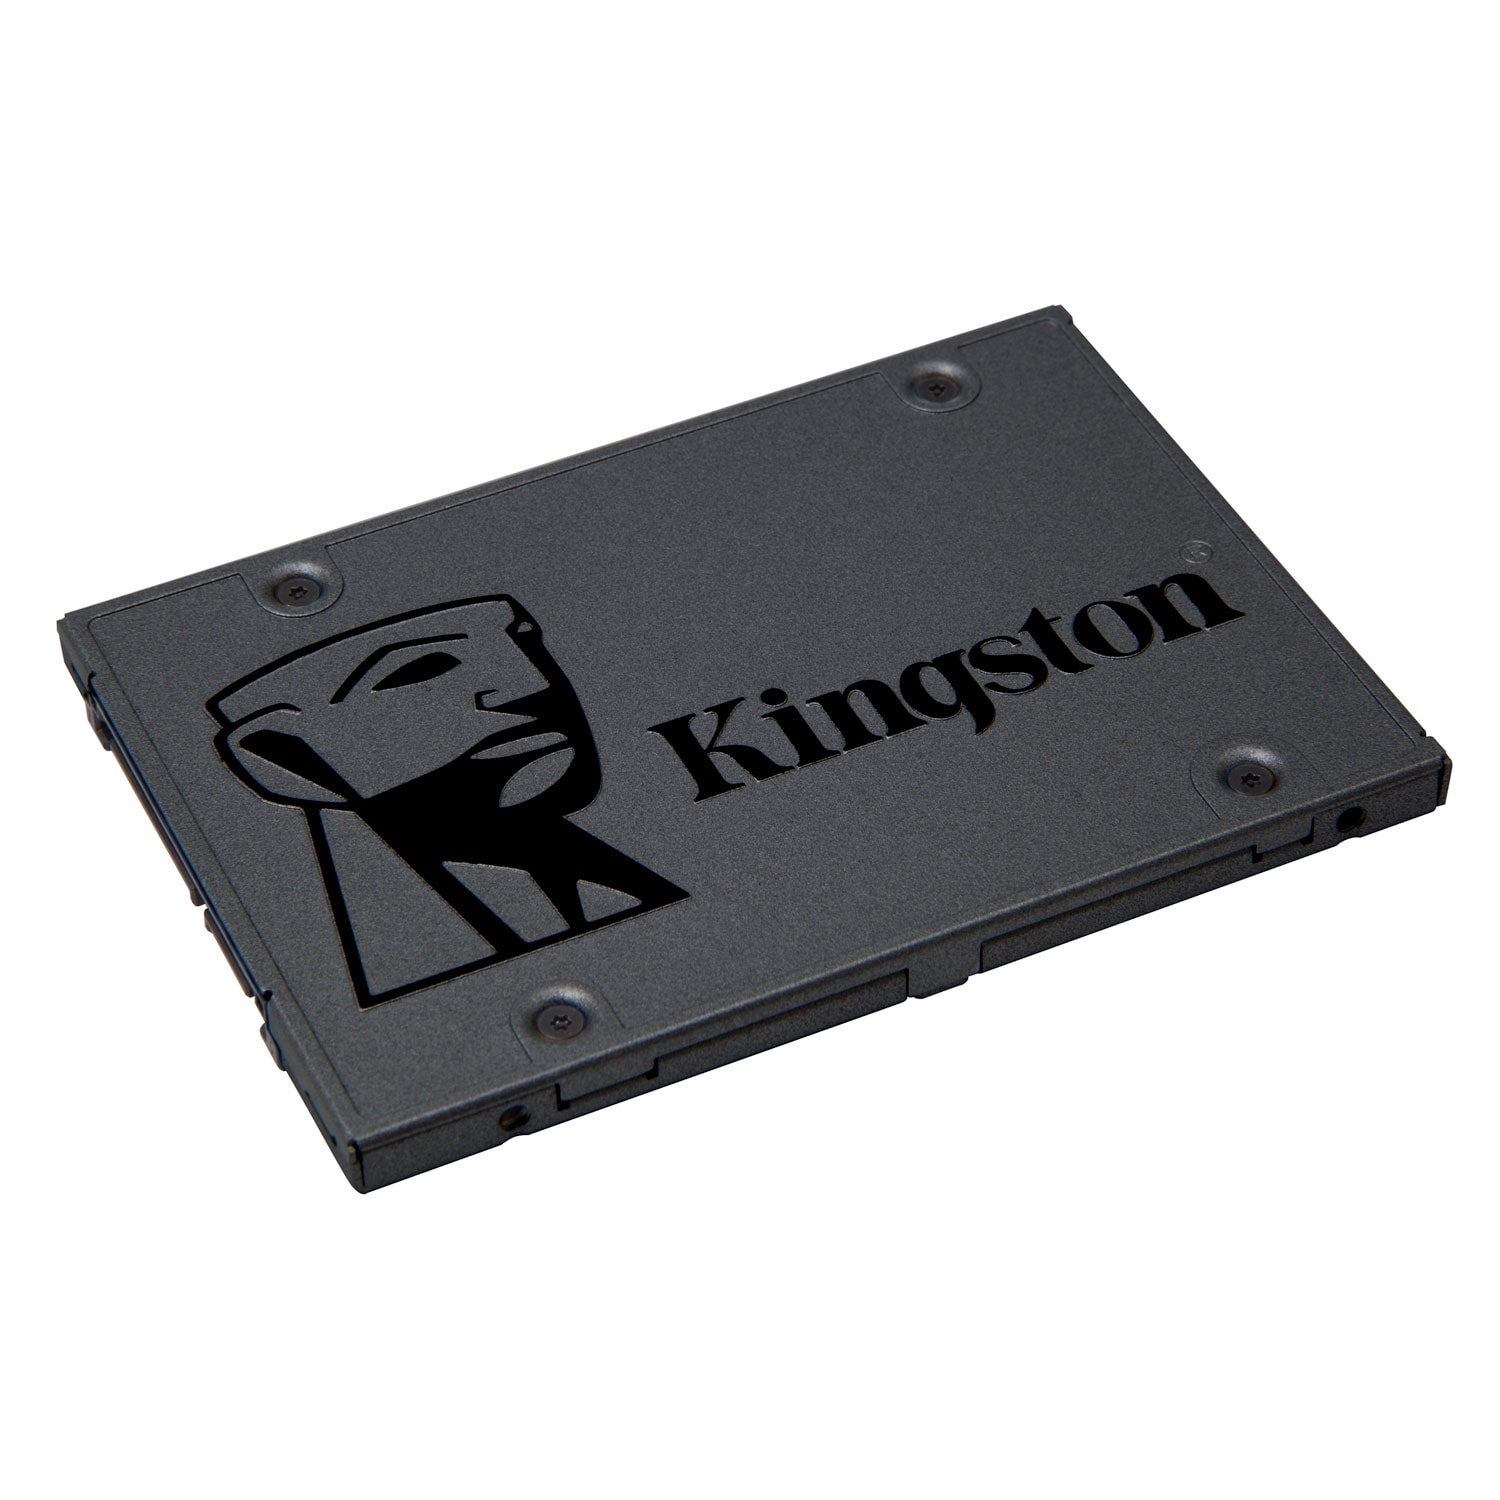 Kingston A400 240-275Go - Disque SSD Kingston - Cybertek.fr - 0